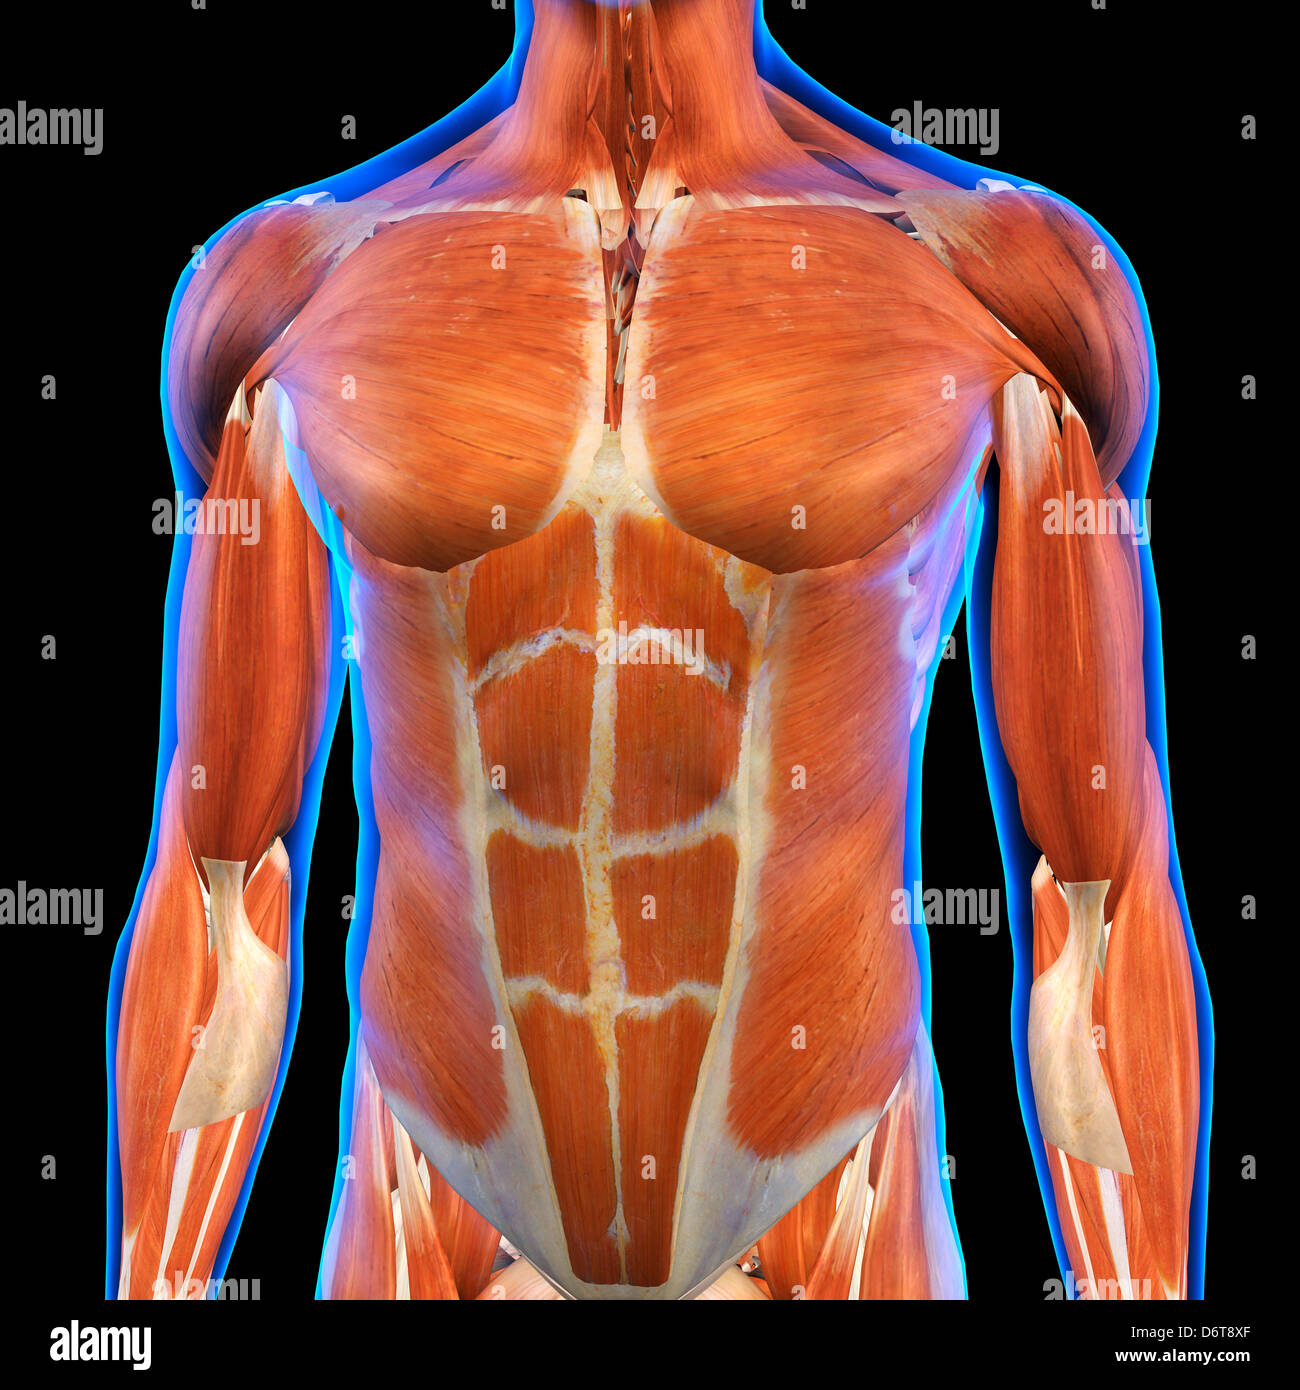 Male Chest Abdominal Muscles Anatomy In Blue X Ray Outline Full